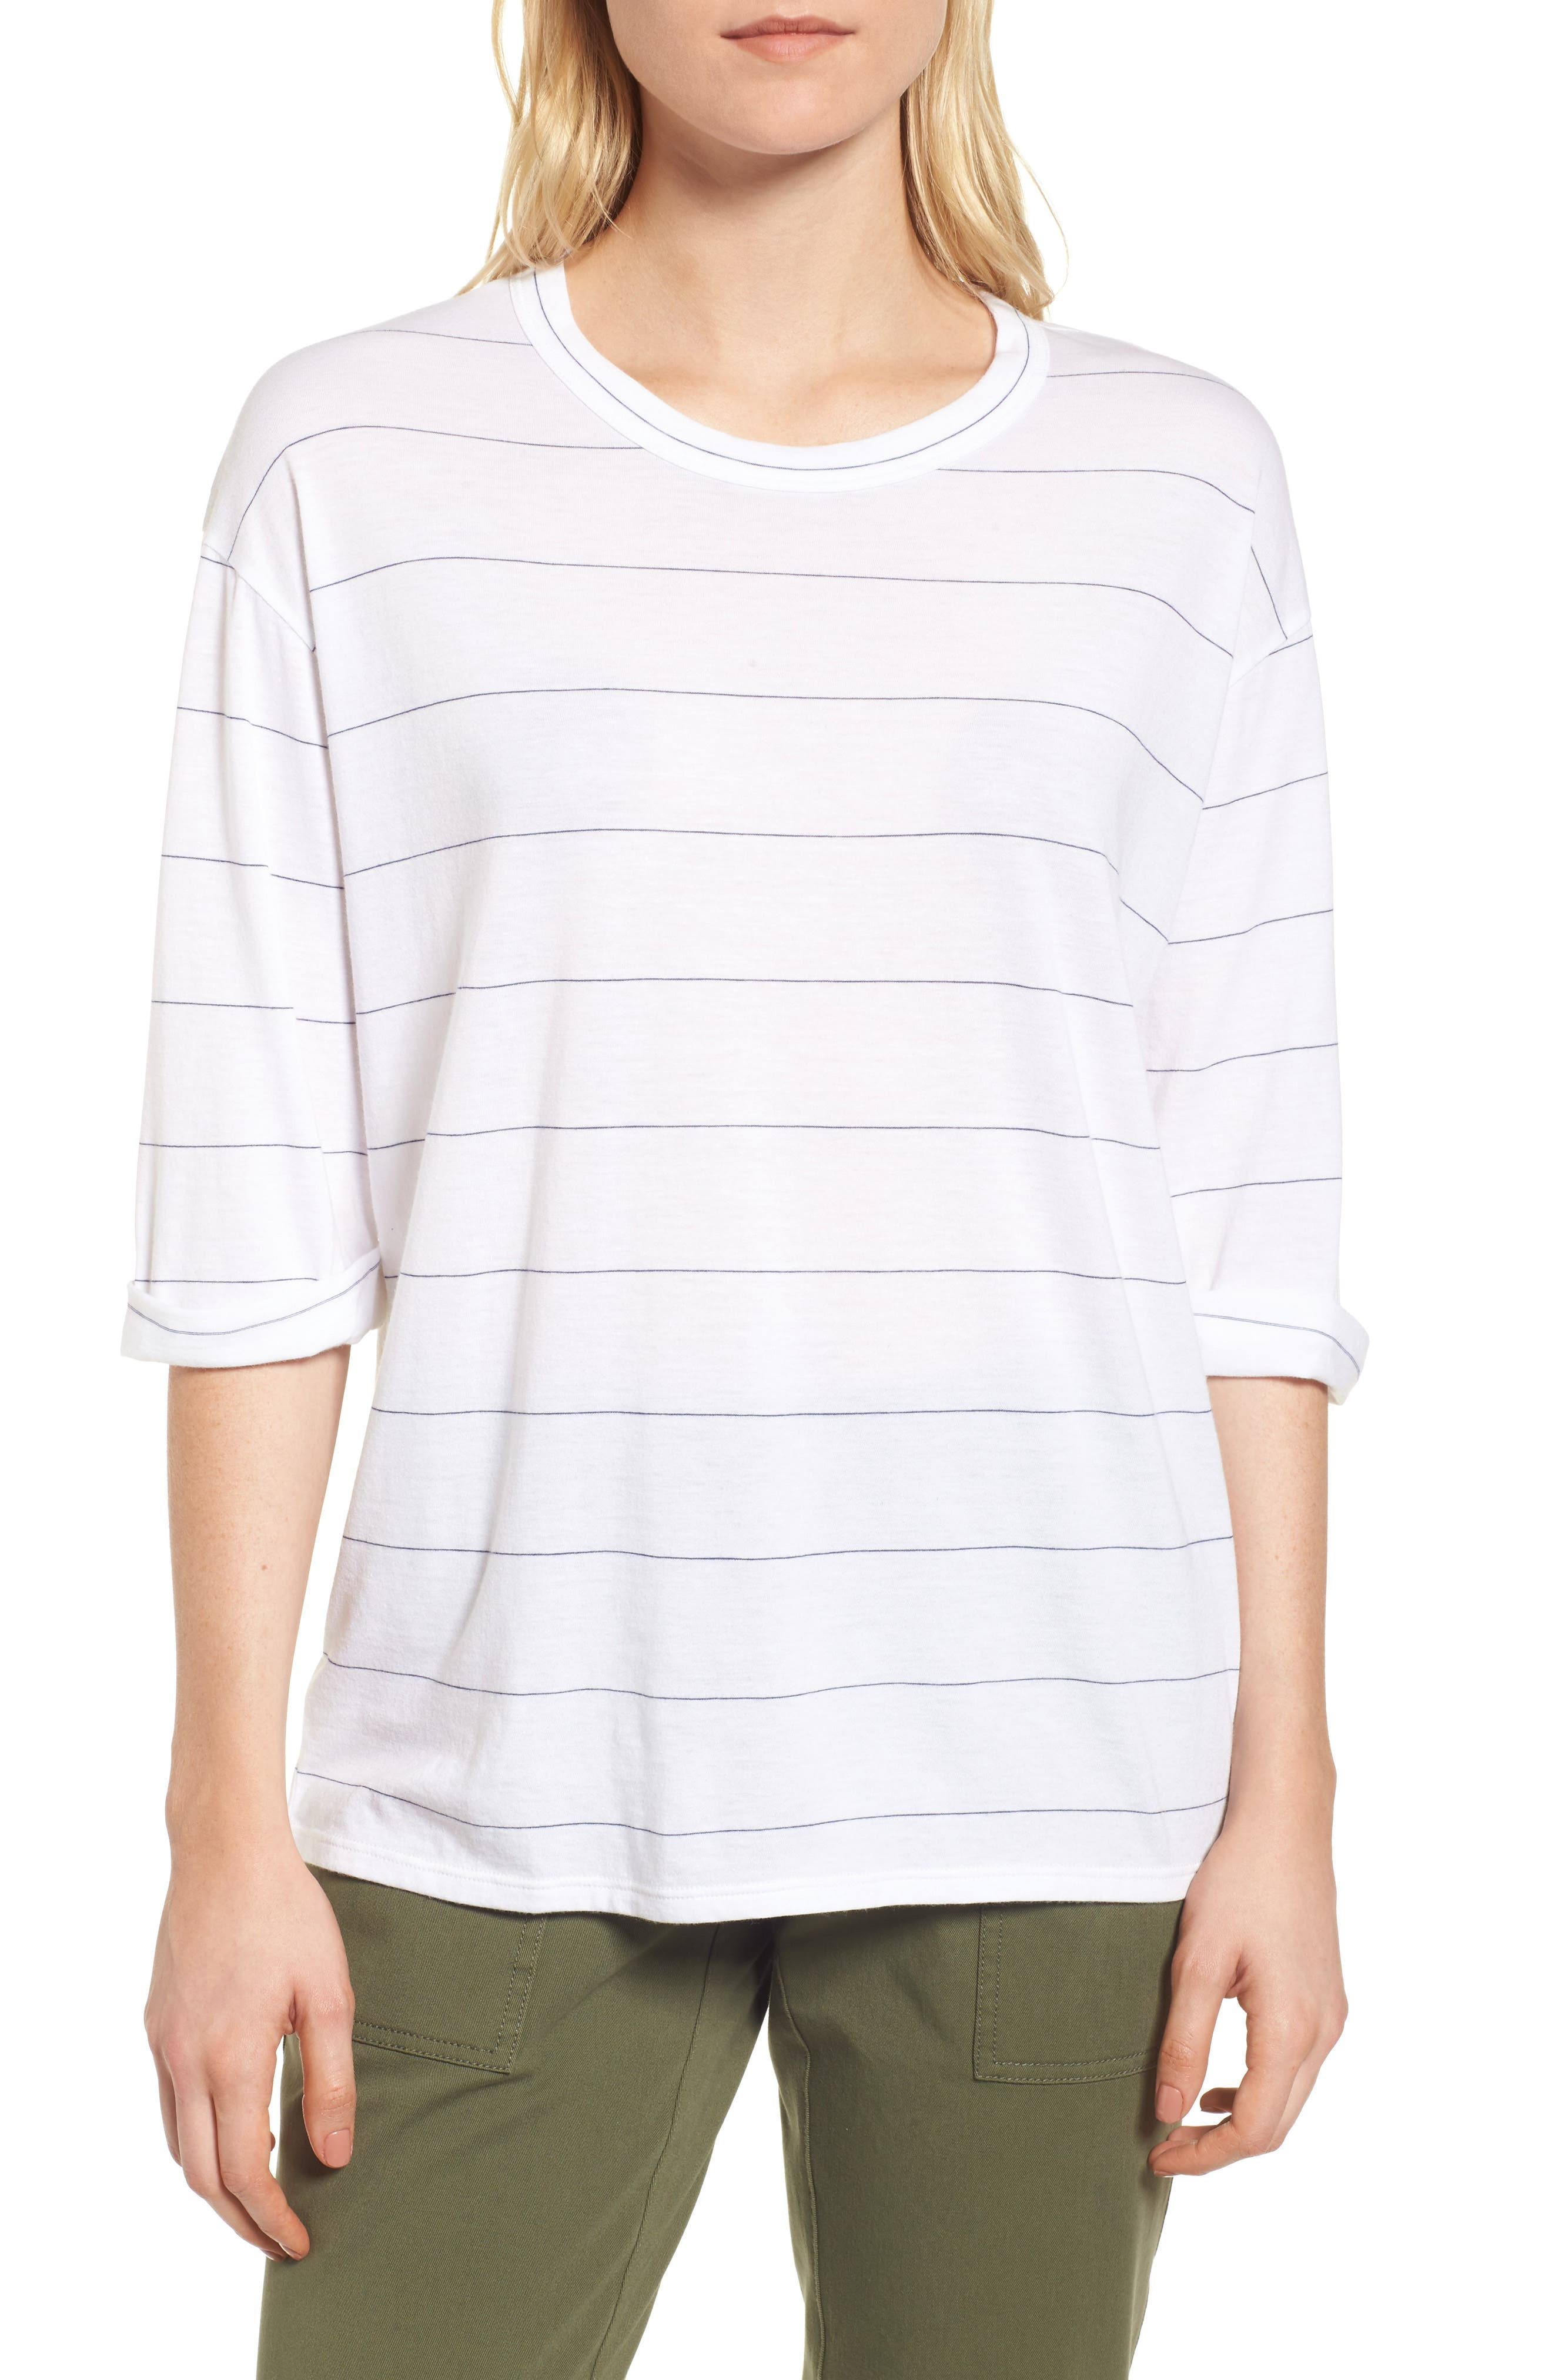 Main Image - Nordstrom Signature Stripe Relaxed Tee